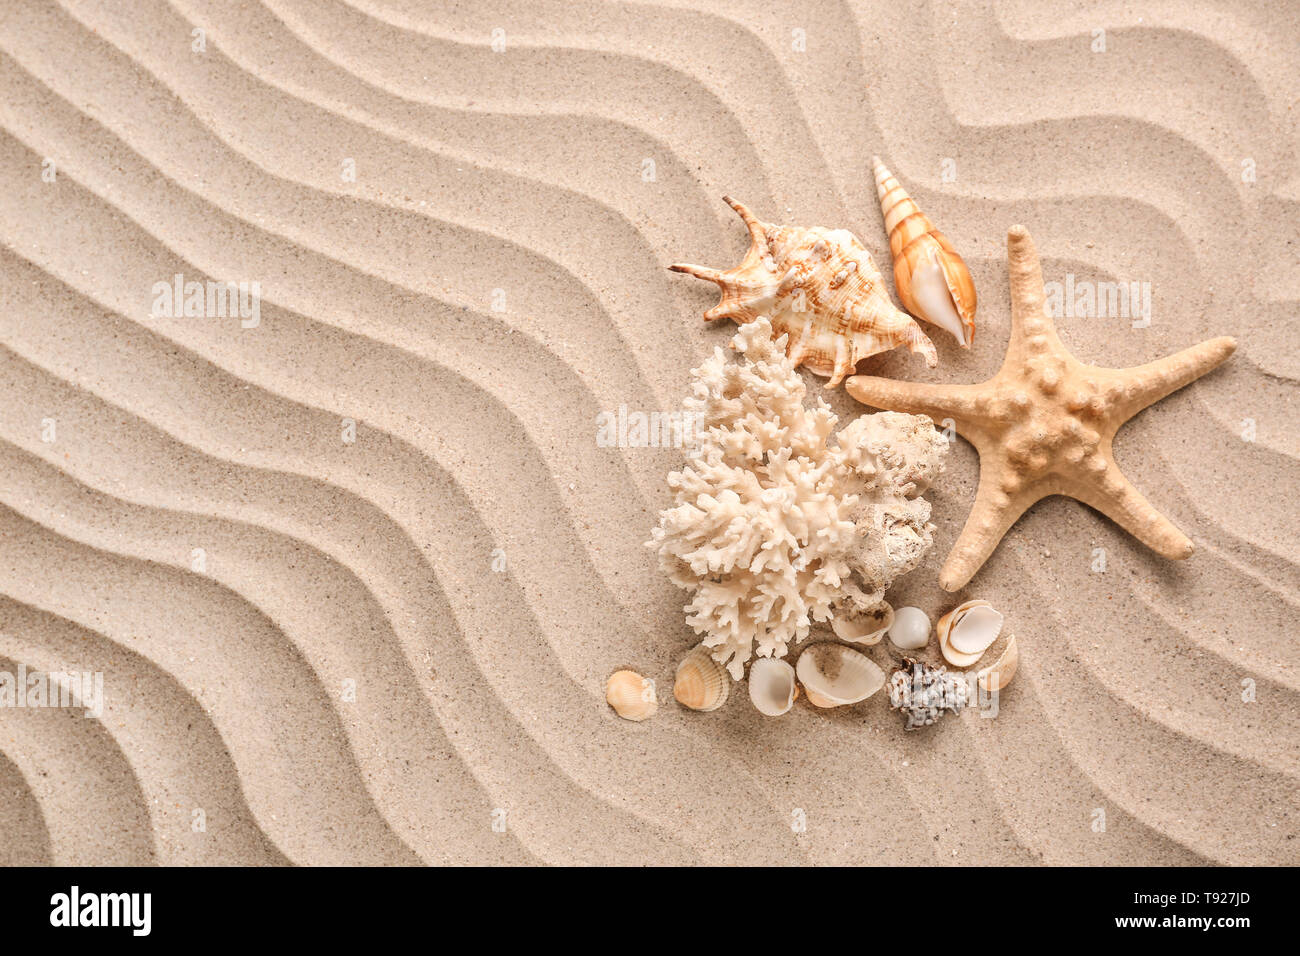 Different sea shells and starfish on sand - Stock Image